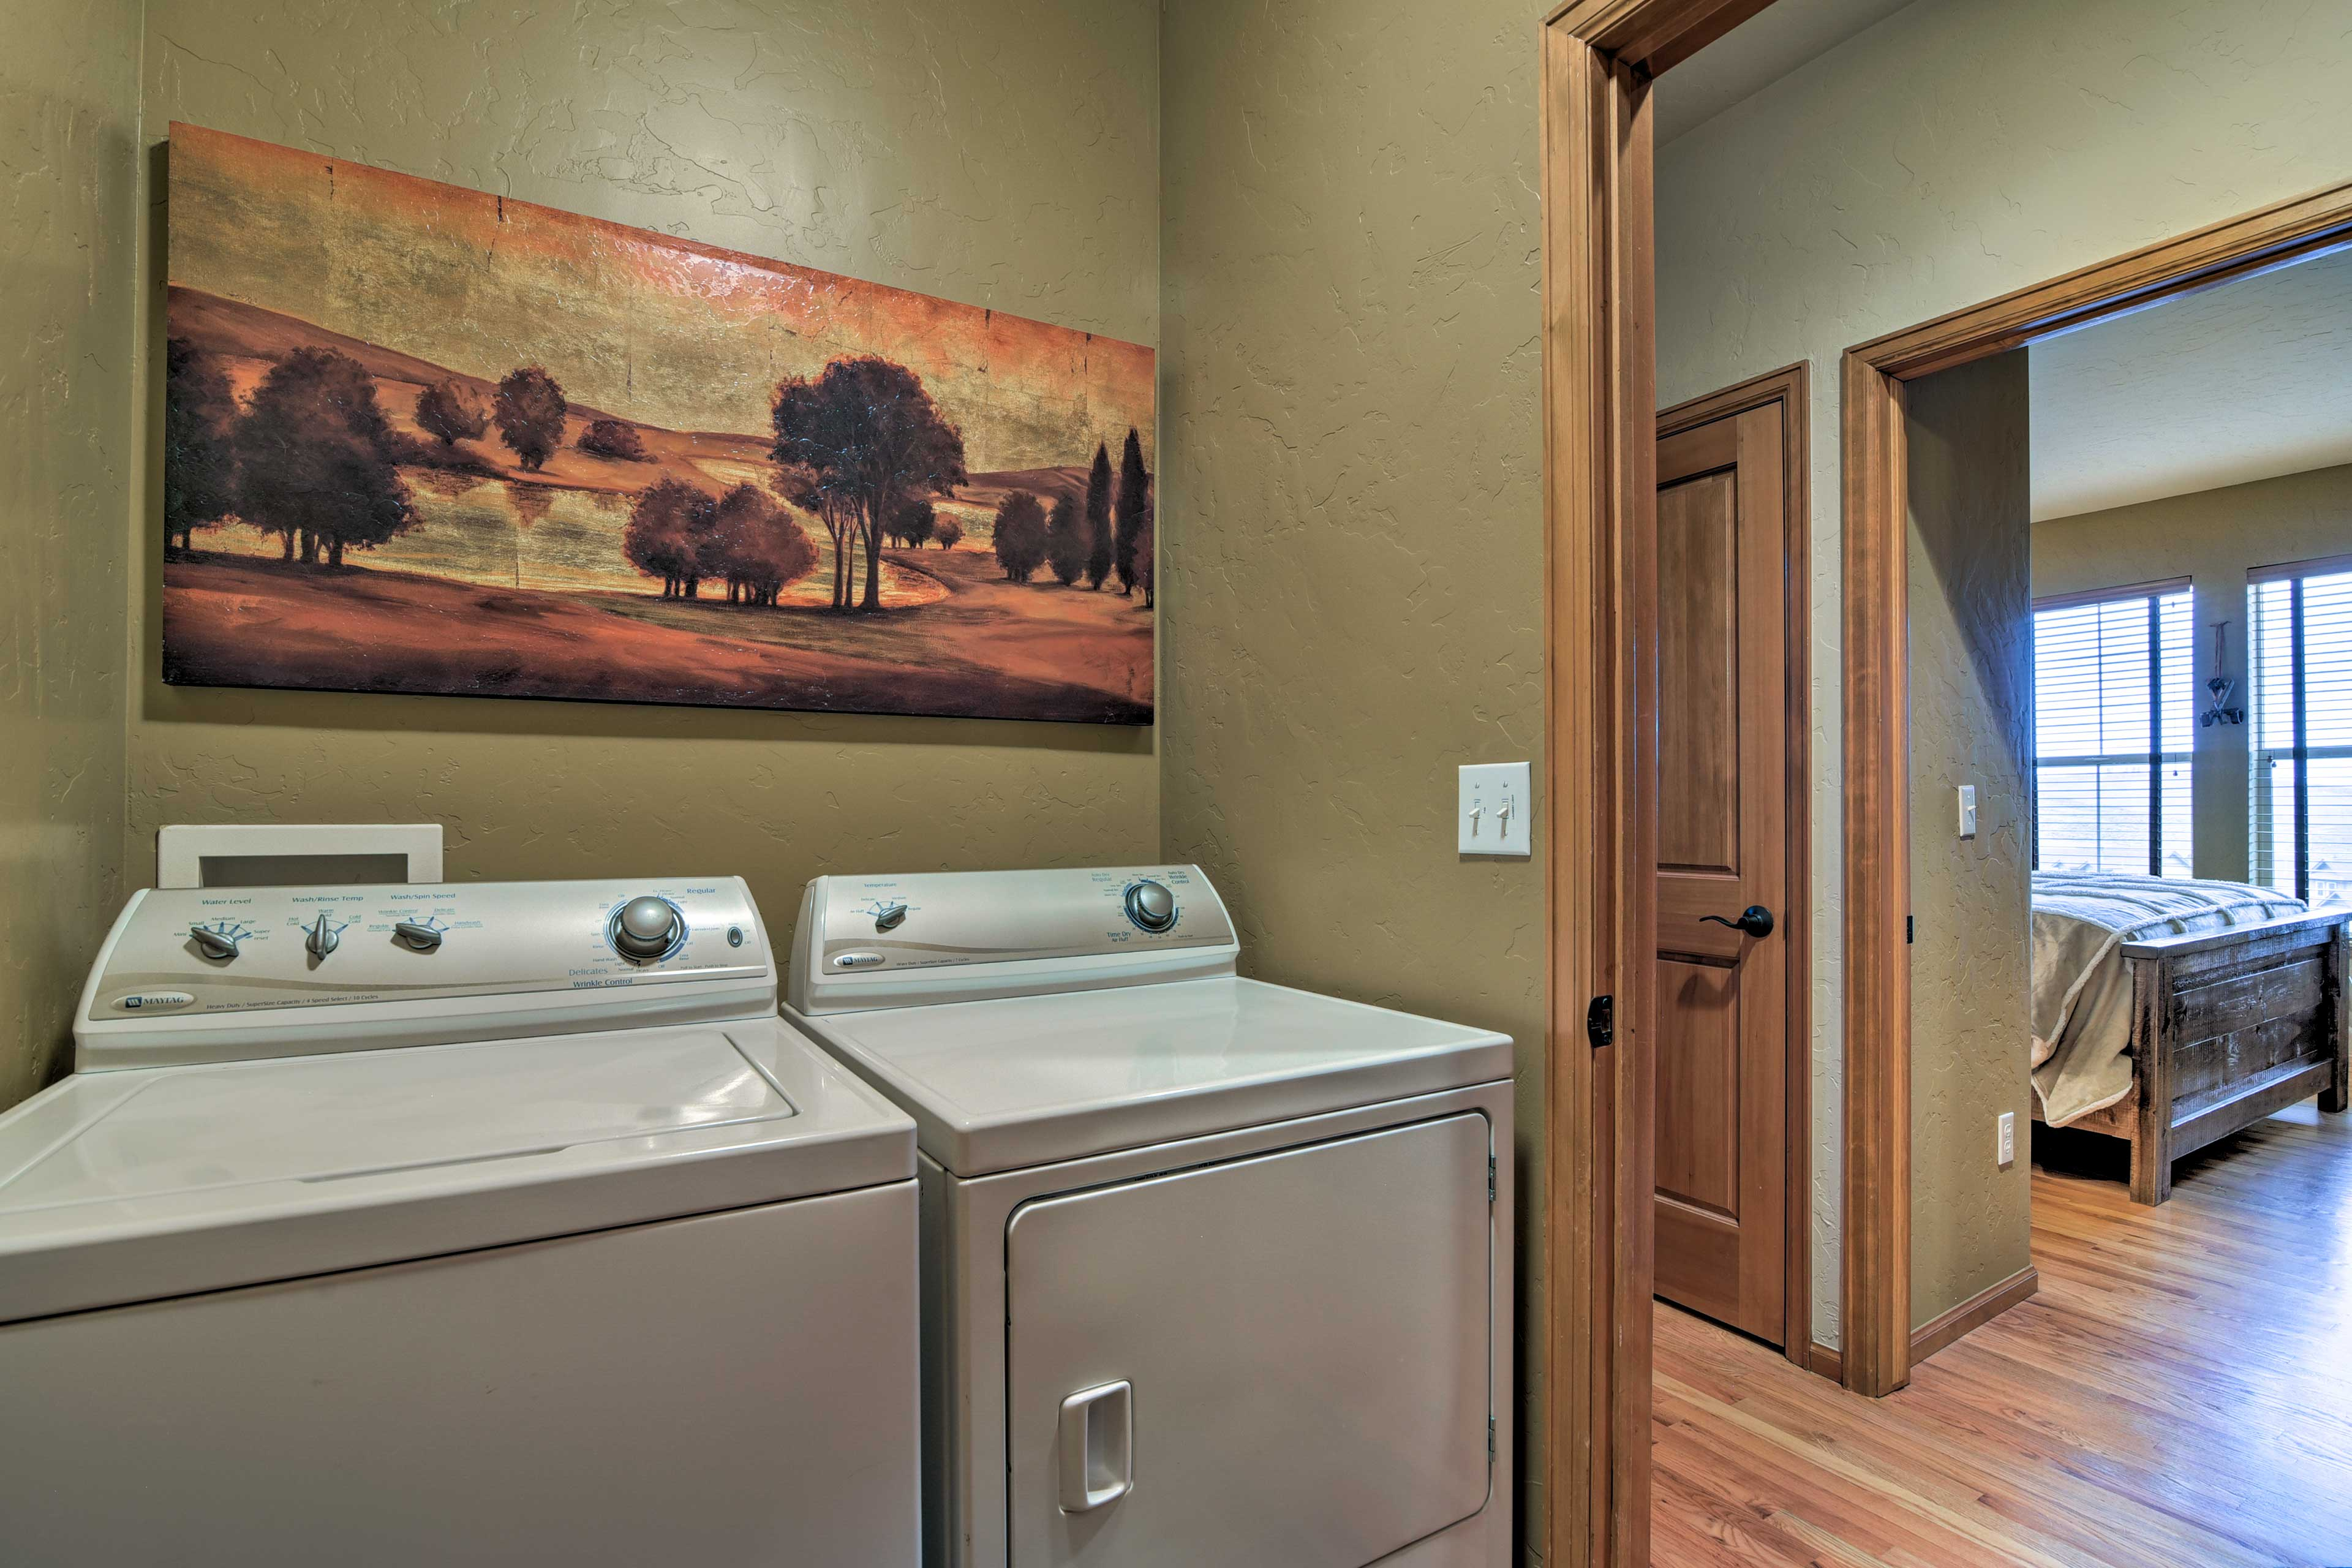 Laundry Machines   Linens/Towels Provided